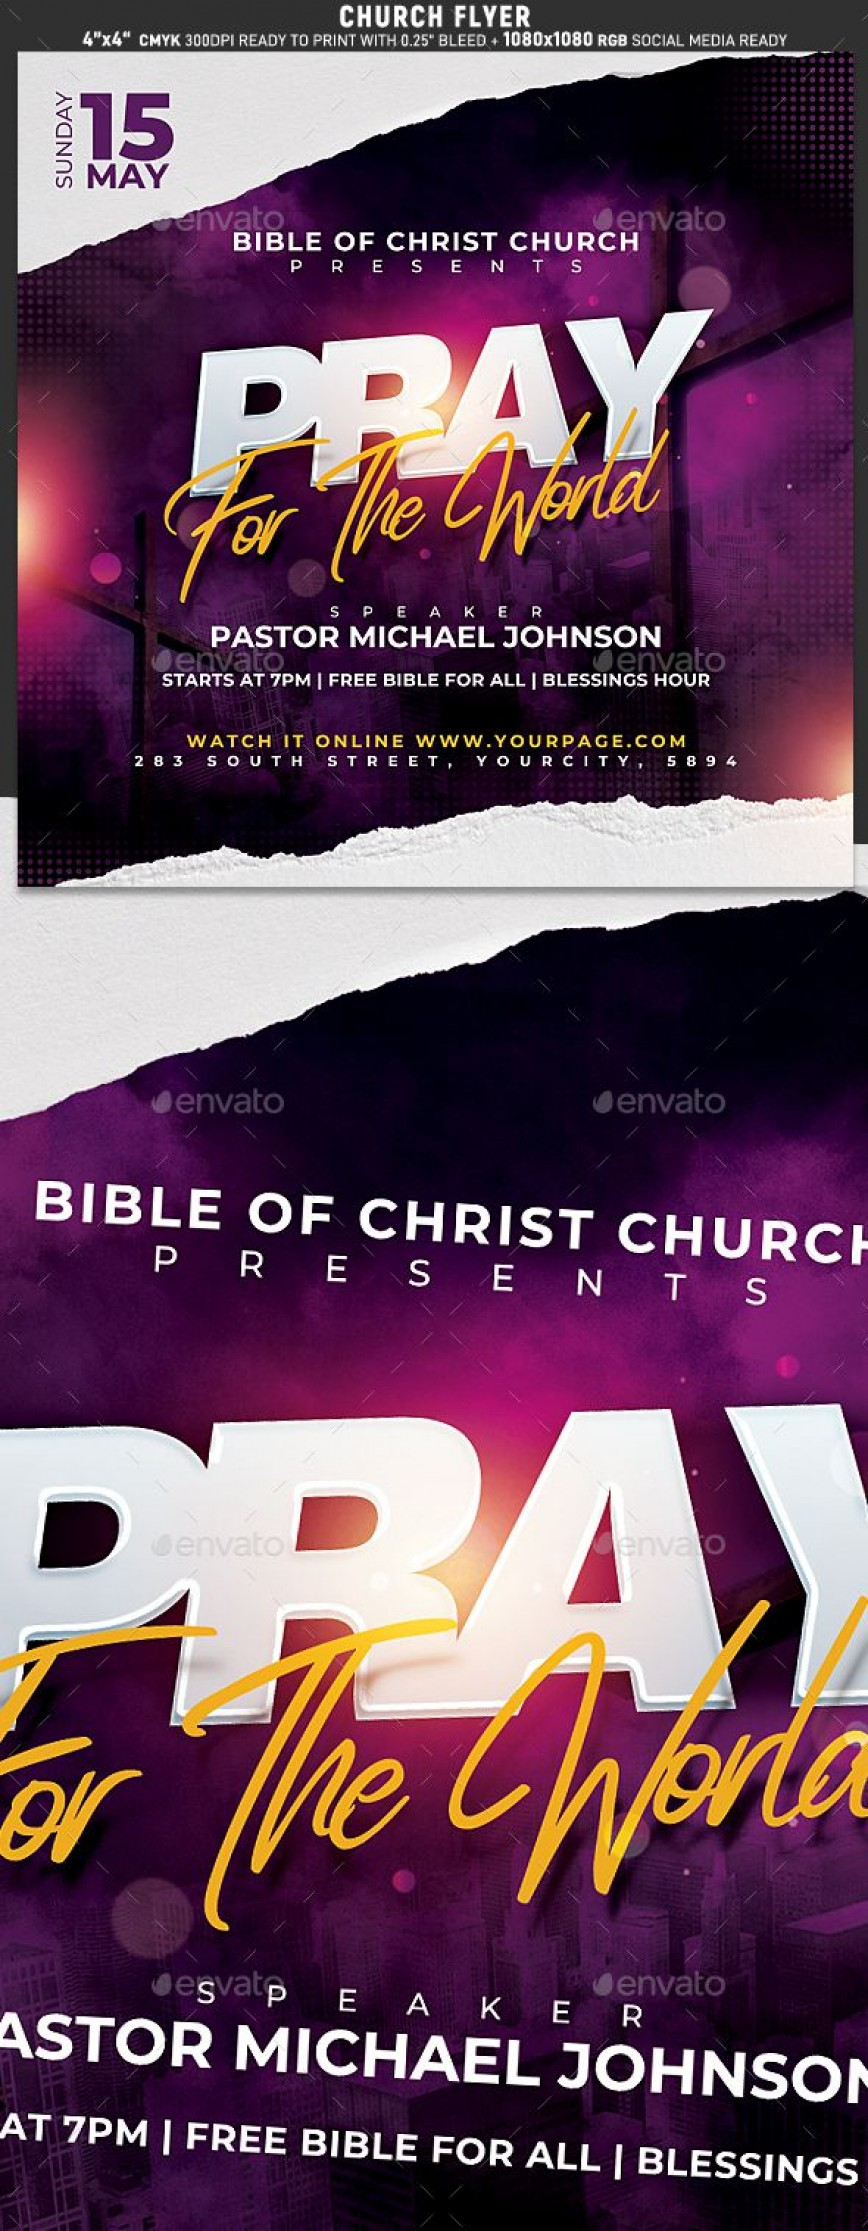 005 Shocking Church Flyer Template Photoshop Free Picture  Psd